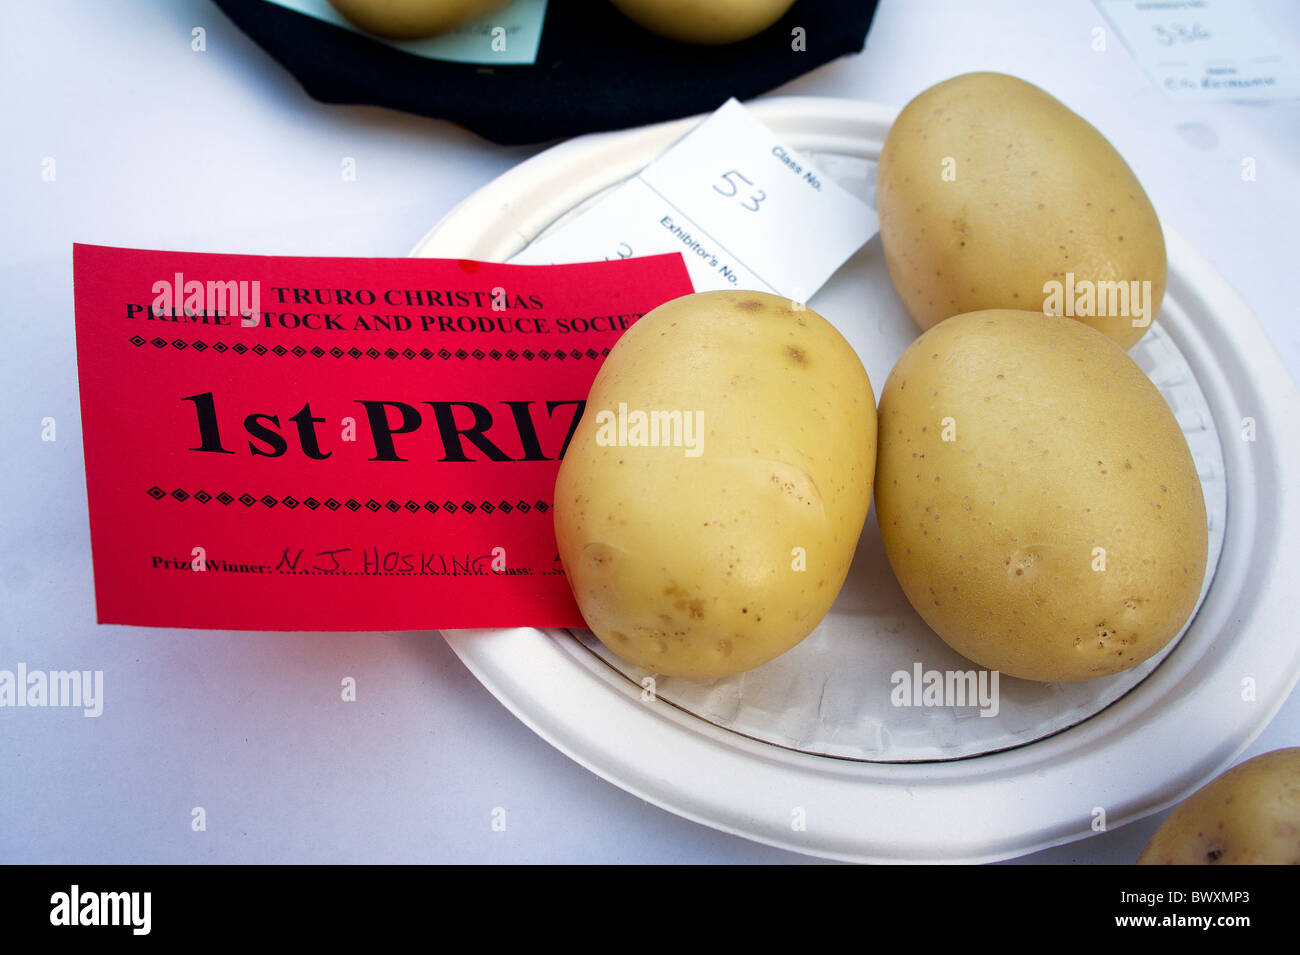 prize winning potatoes at vegetable show - Stock Image